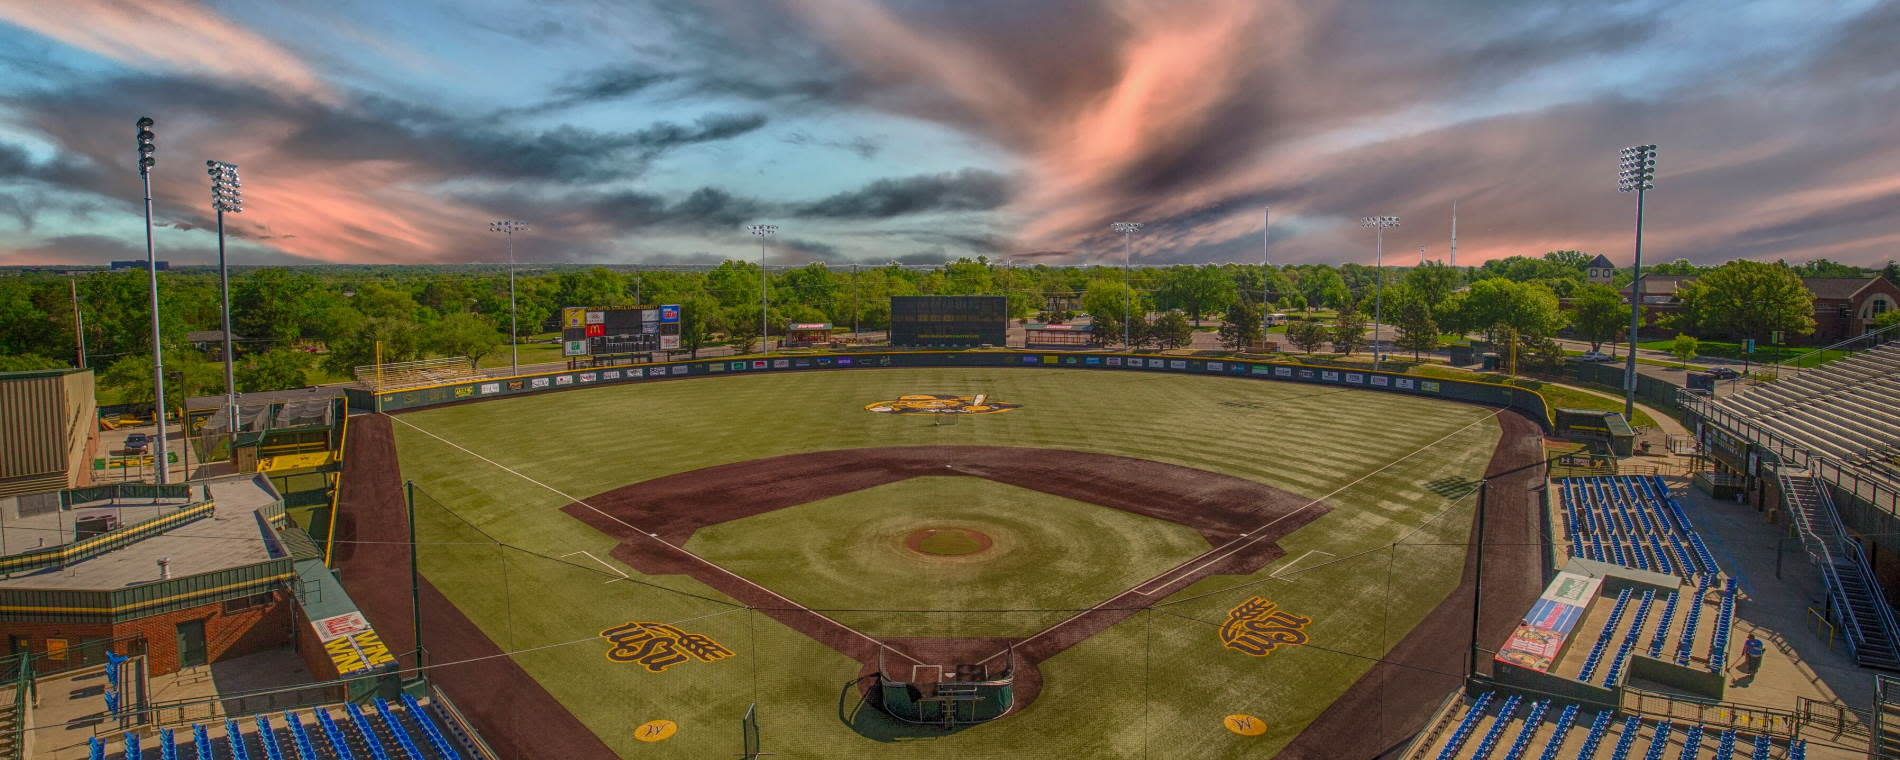 Tyler Field at WSU's Eck Stadium